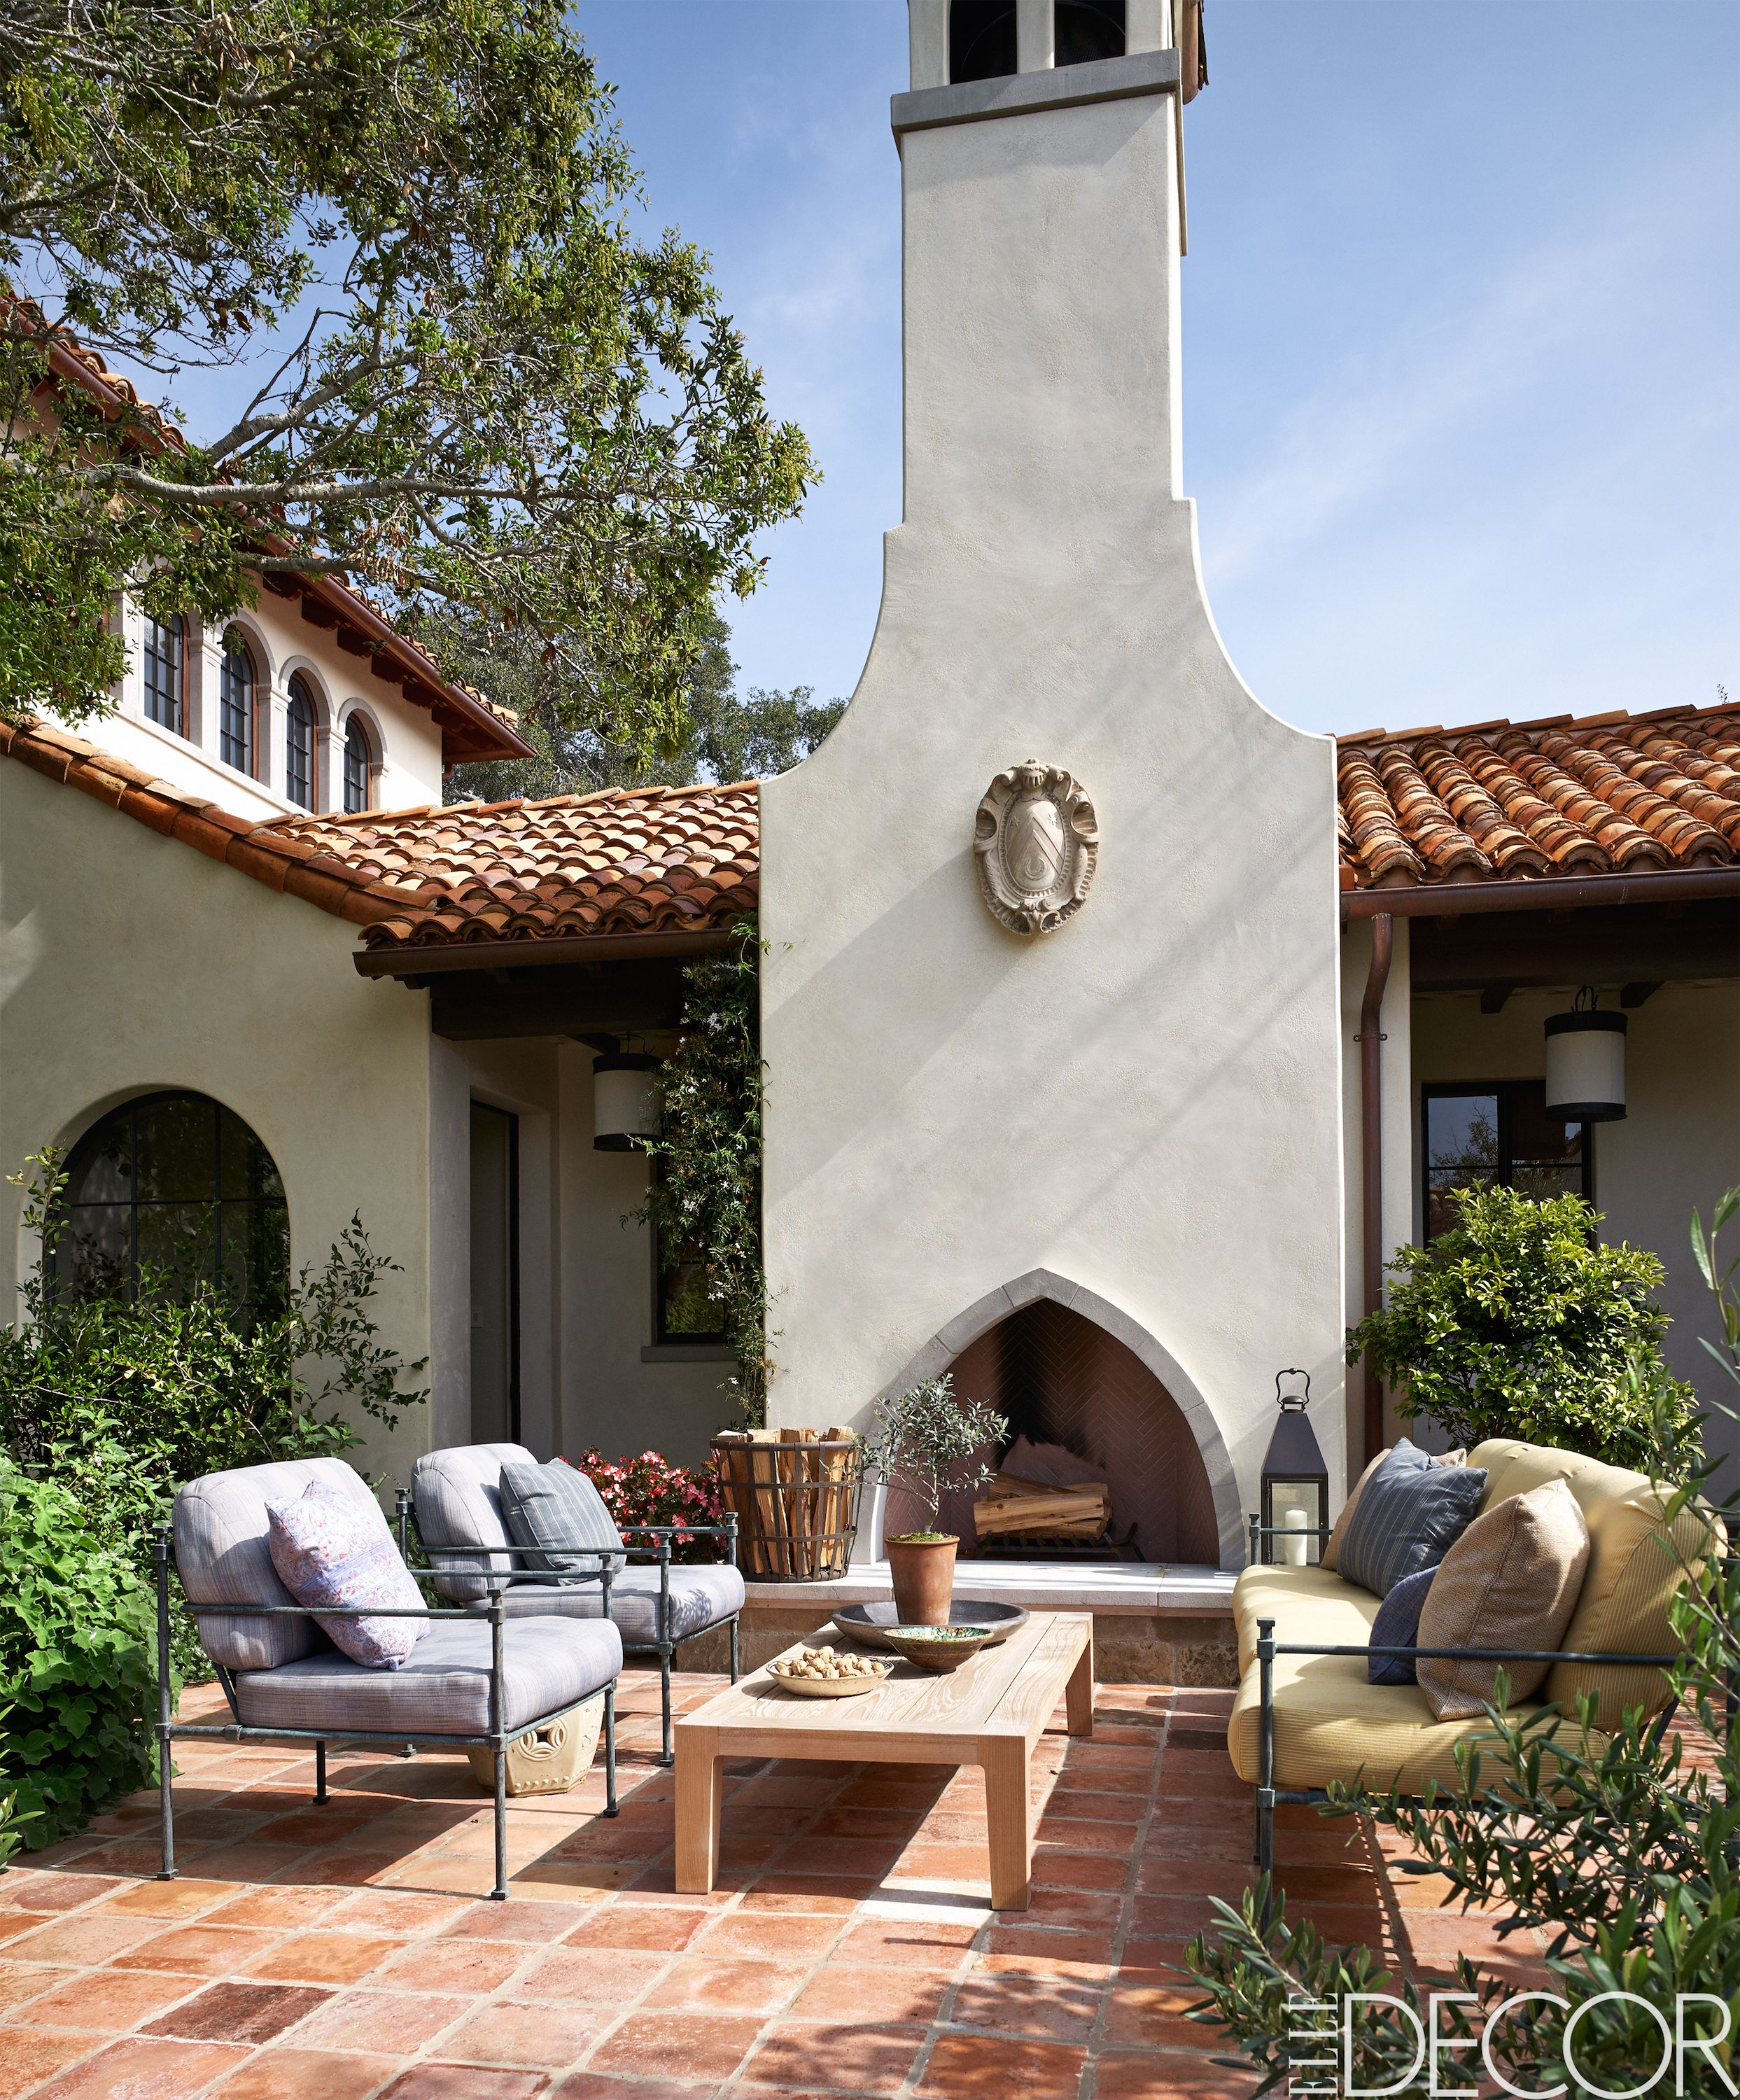 12 outdoor fireplaces to kindle alfresco entertaining for Spanish outdoor fireplace